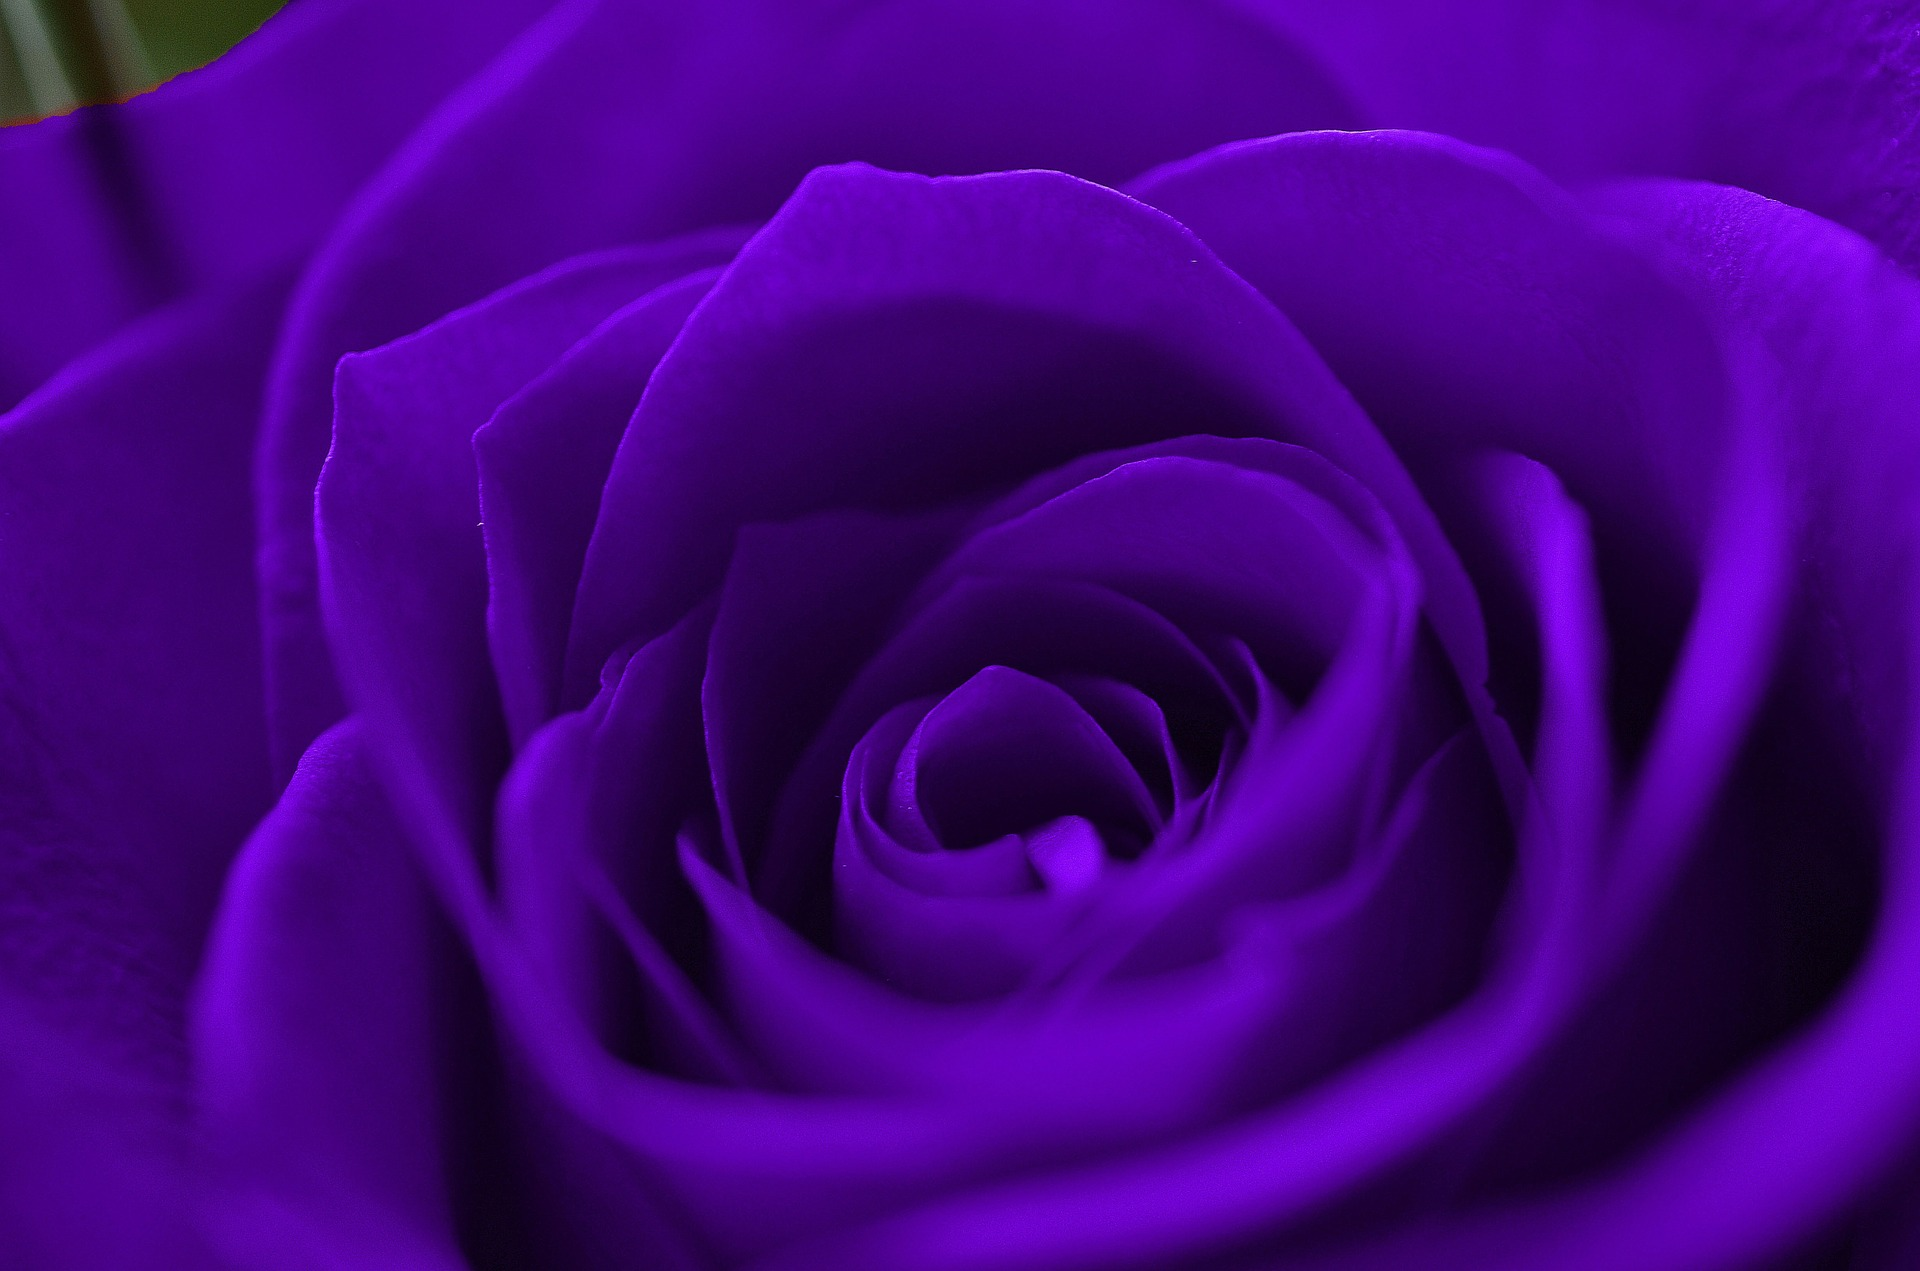 Purple Rose HD Wallpapers